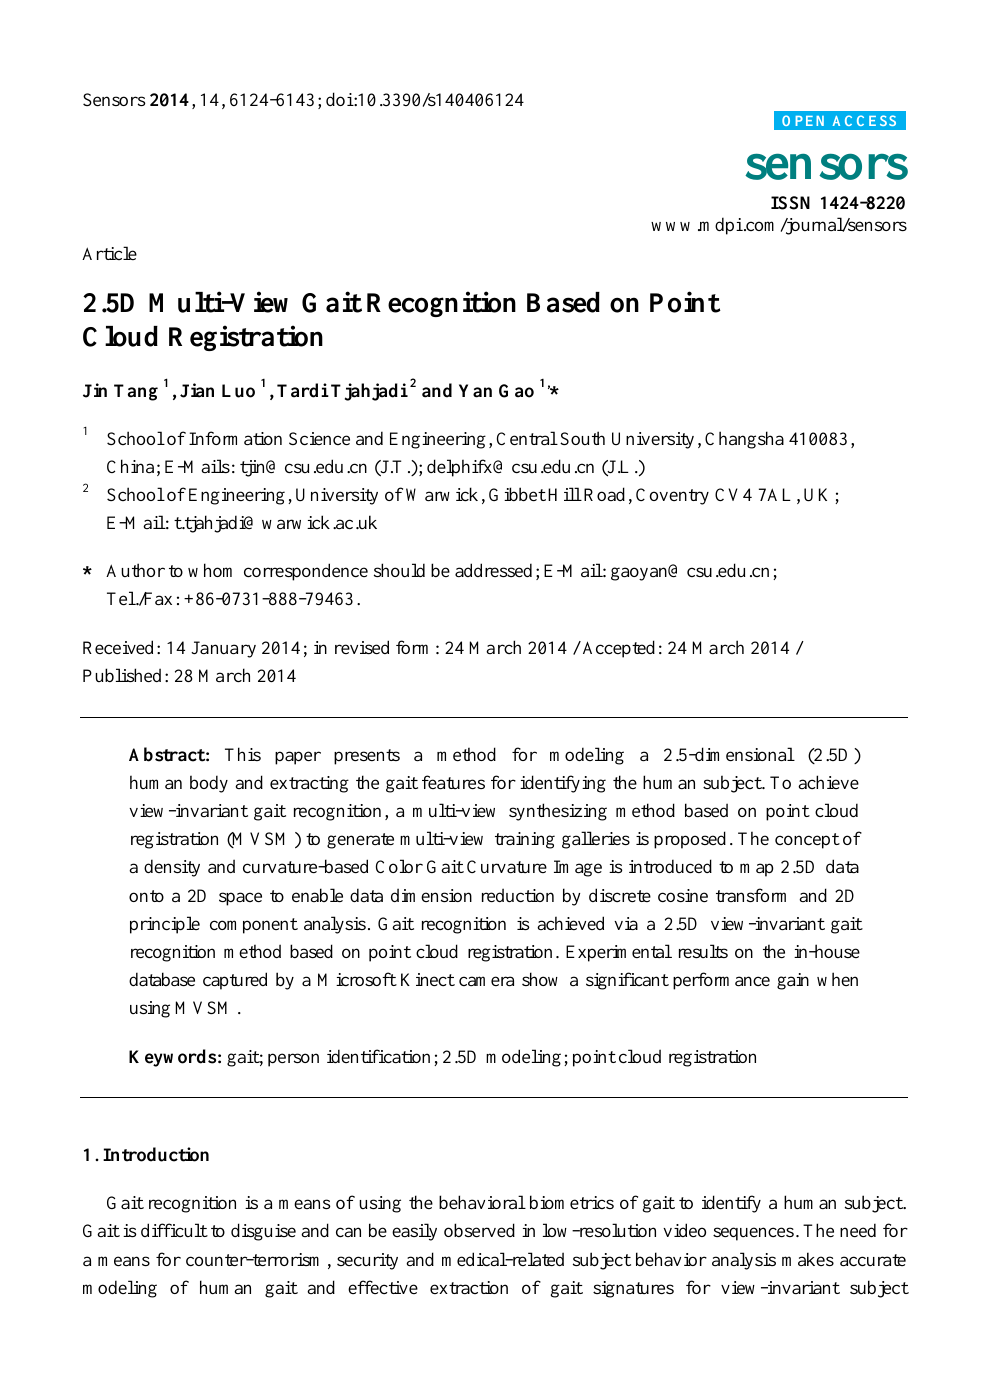 2 5D Multi-View Gait Recognition Based on Point Cloud